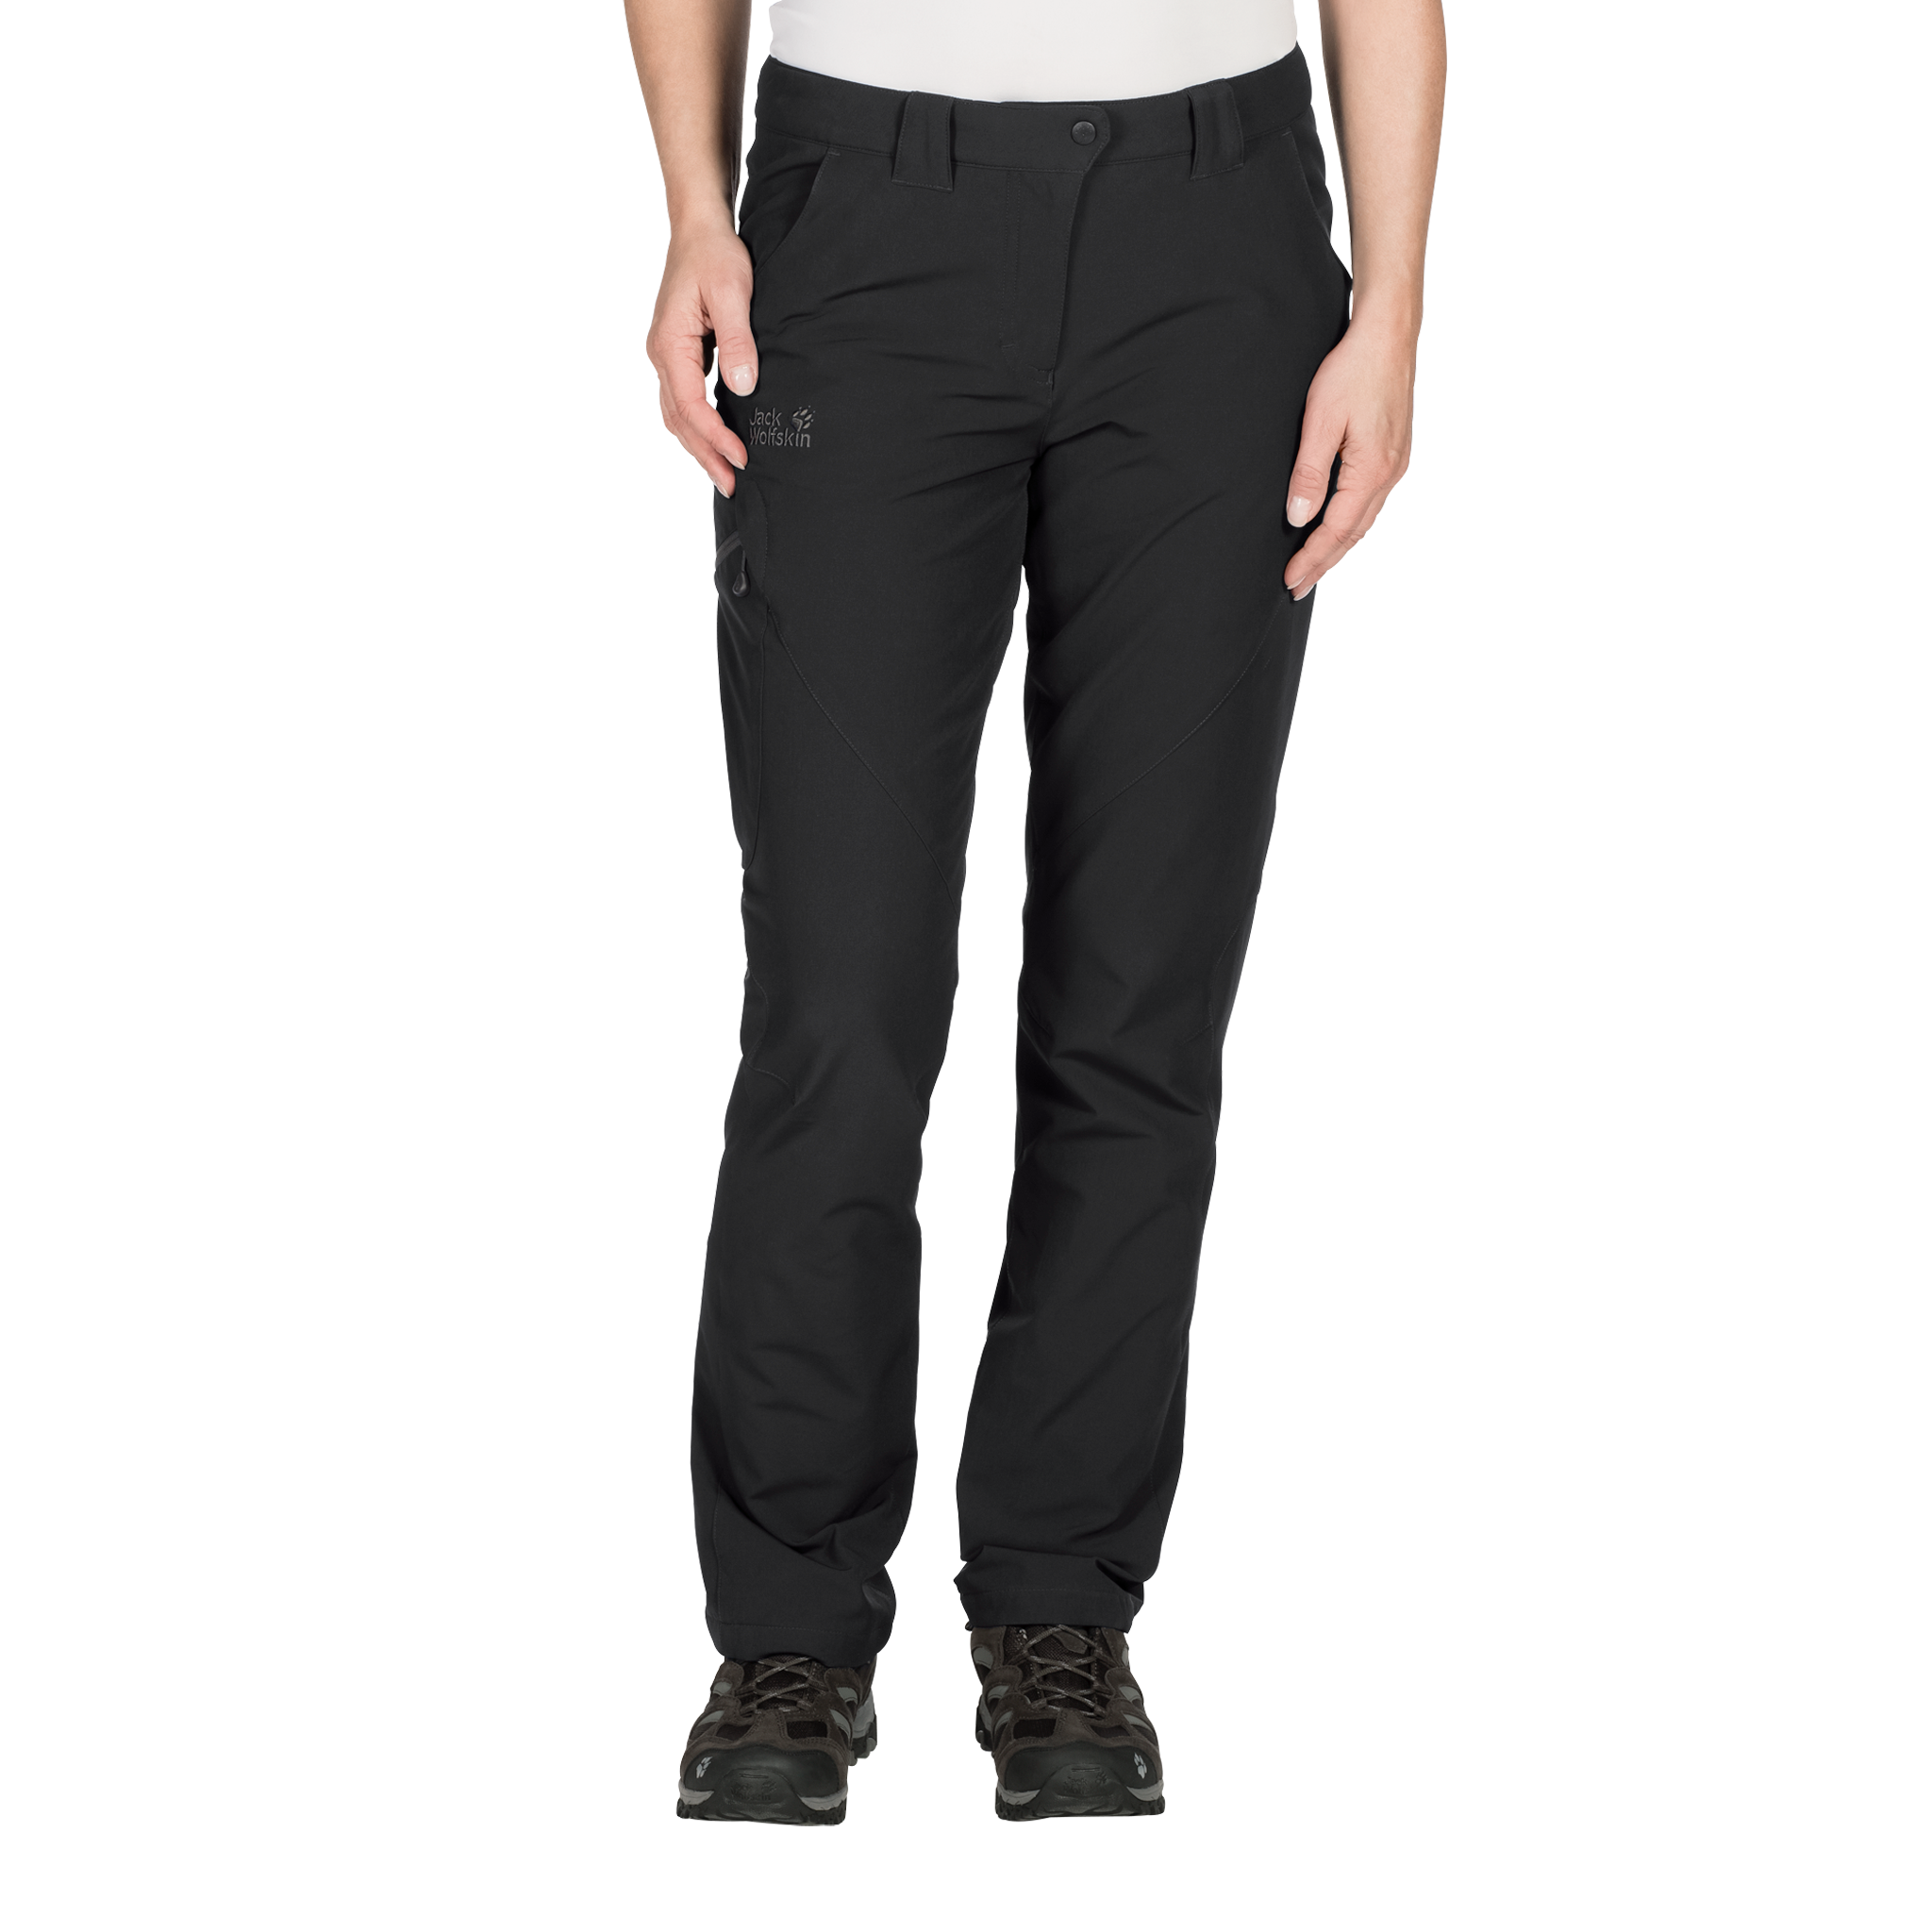 Jeans vector track. Jack wolfskin chilly xt